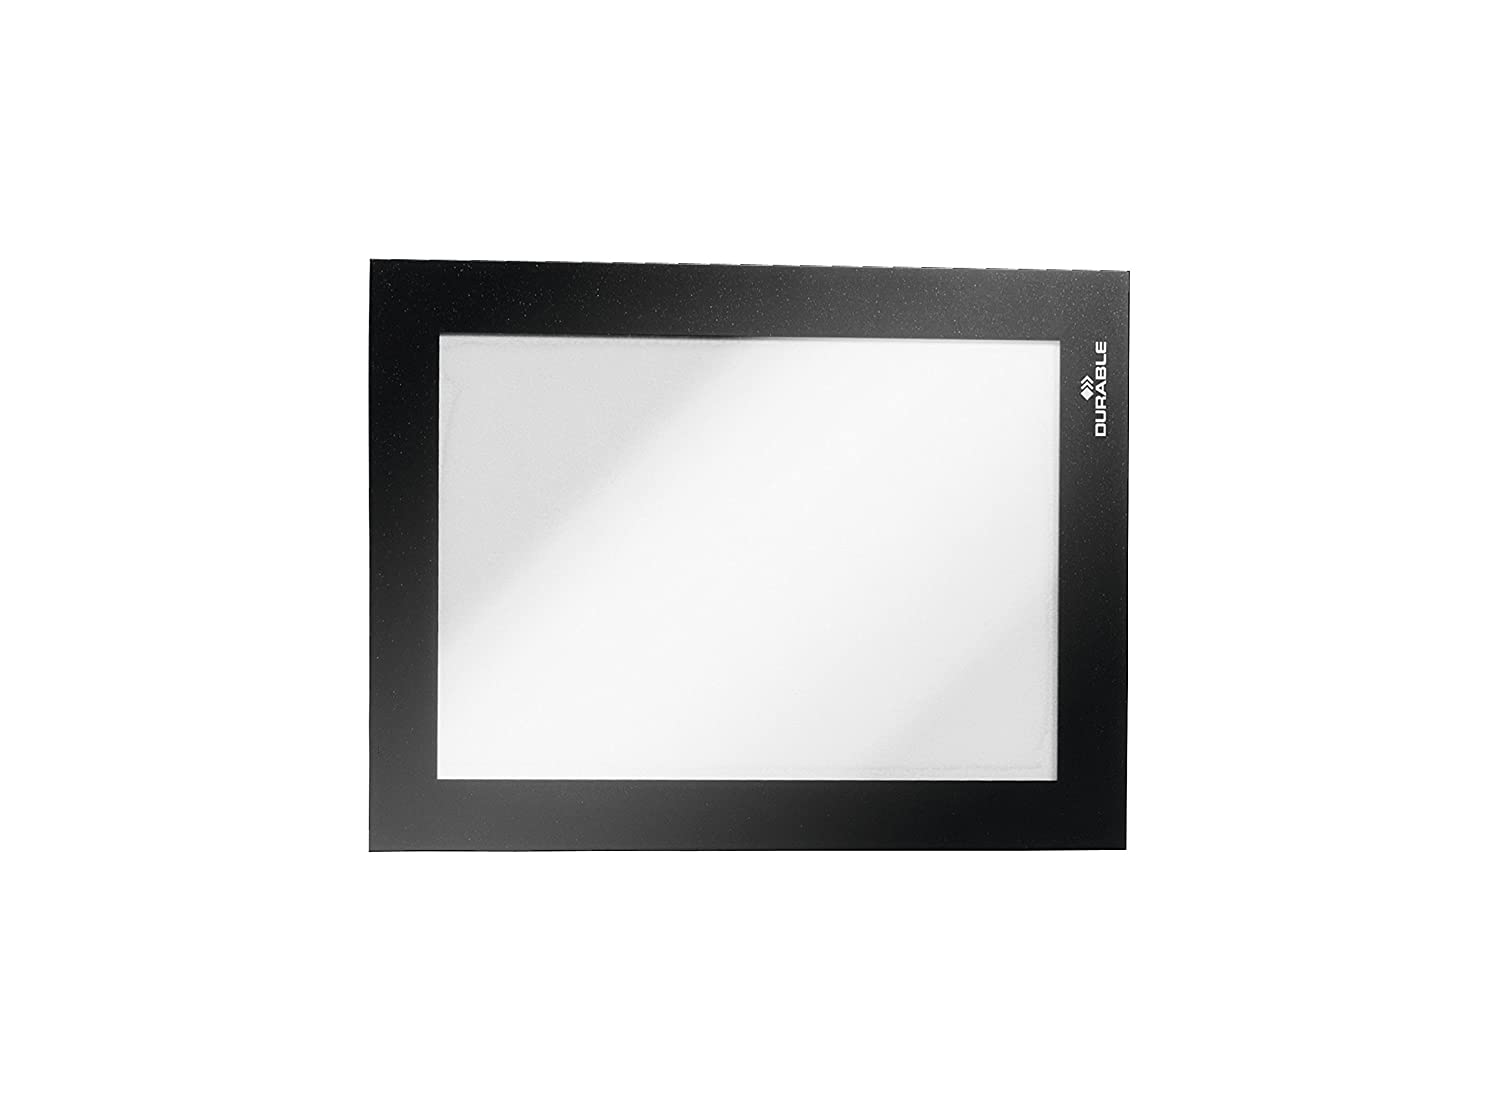 Durable DURAFRAME 487202 Retail Pack of 2 Notices A4 Magnetic Frame with Self-Adhesive Backing Display Frame for POS Wall and Windows White Photos